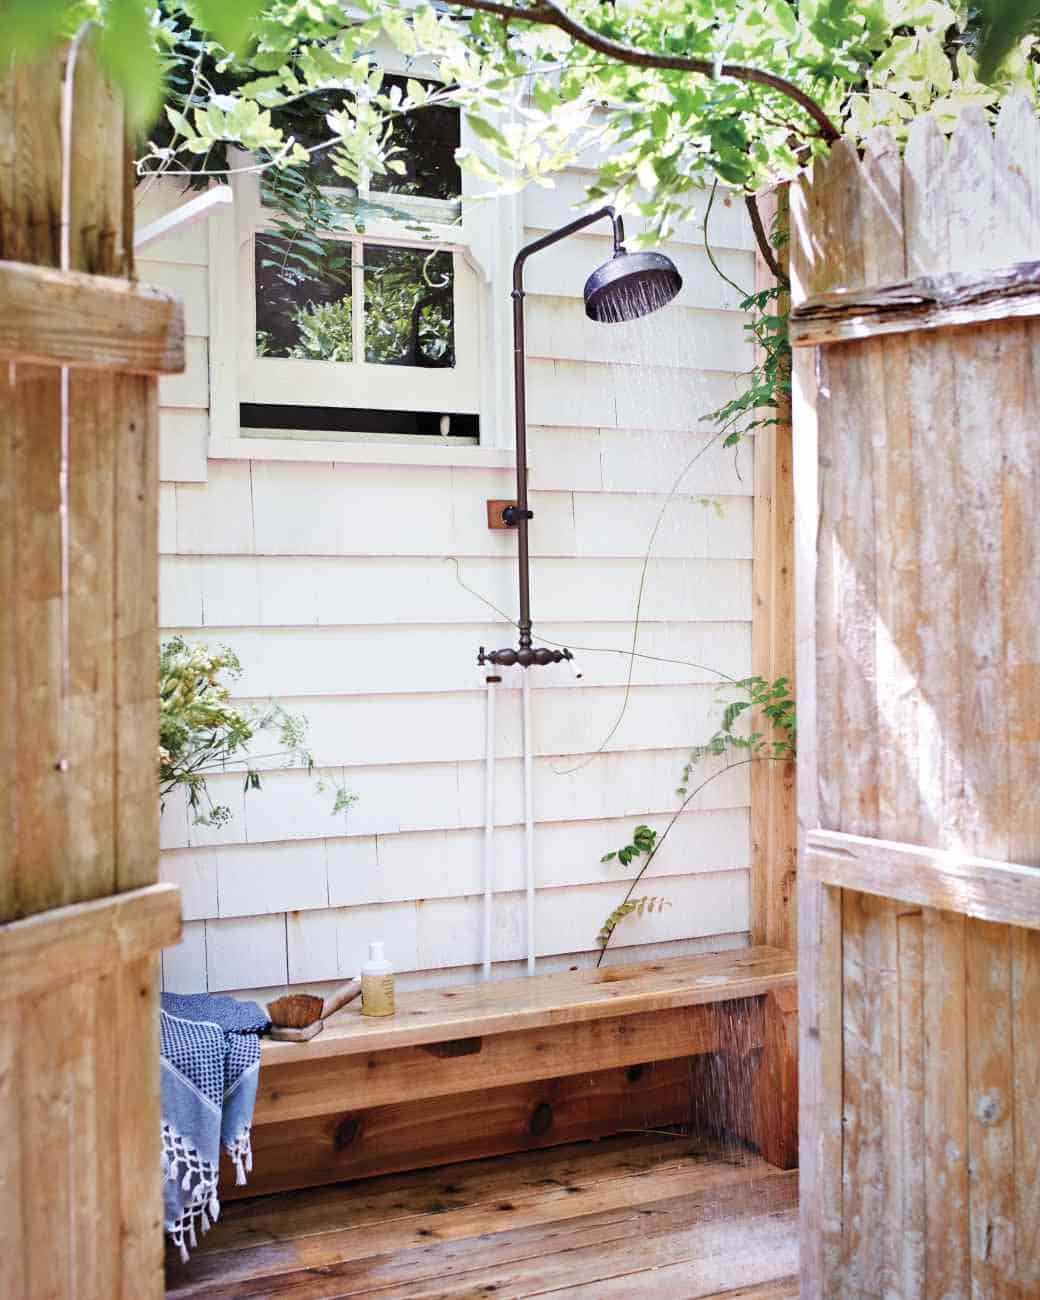 Outdoor Shower Design Ideas-19-1 Kindesign